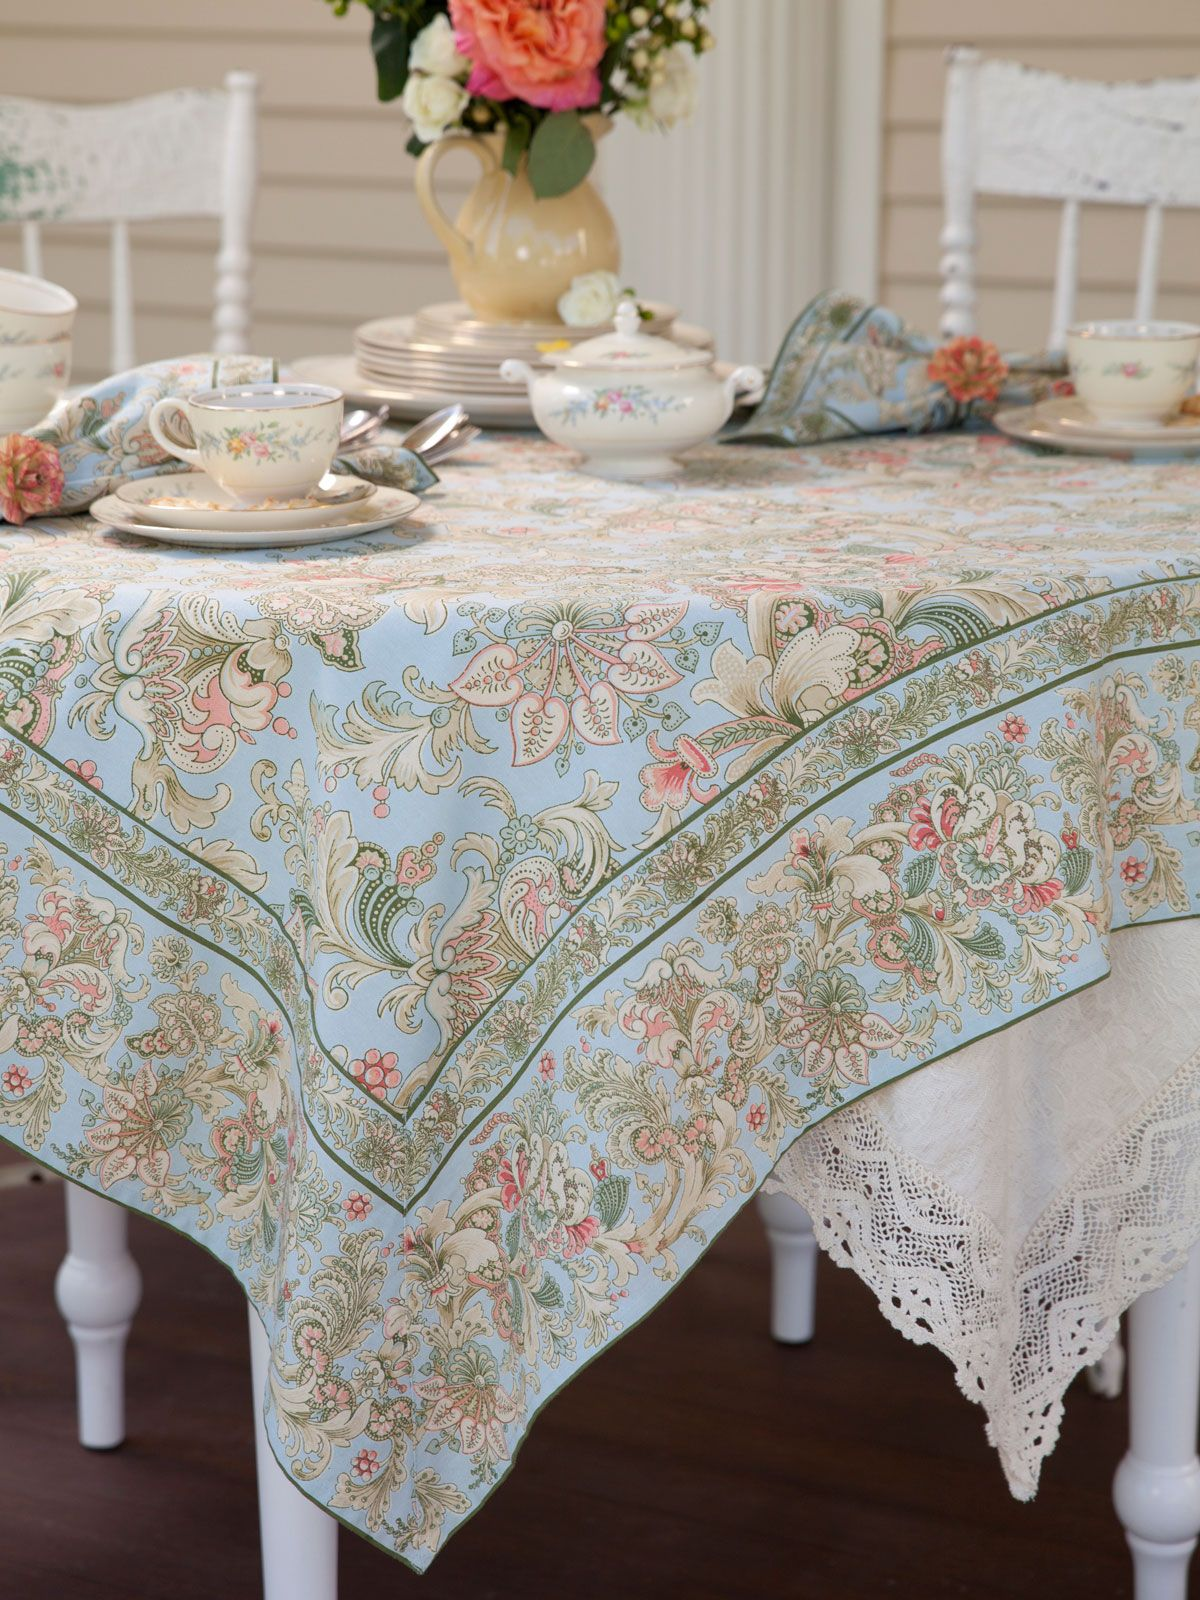 Jacob S Court Tablecloth Linen Color Stories Our Collections Everyday Elegance Beautiful Designs By April Table Cloth Dining Room Tablecloth Table Linens